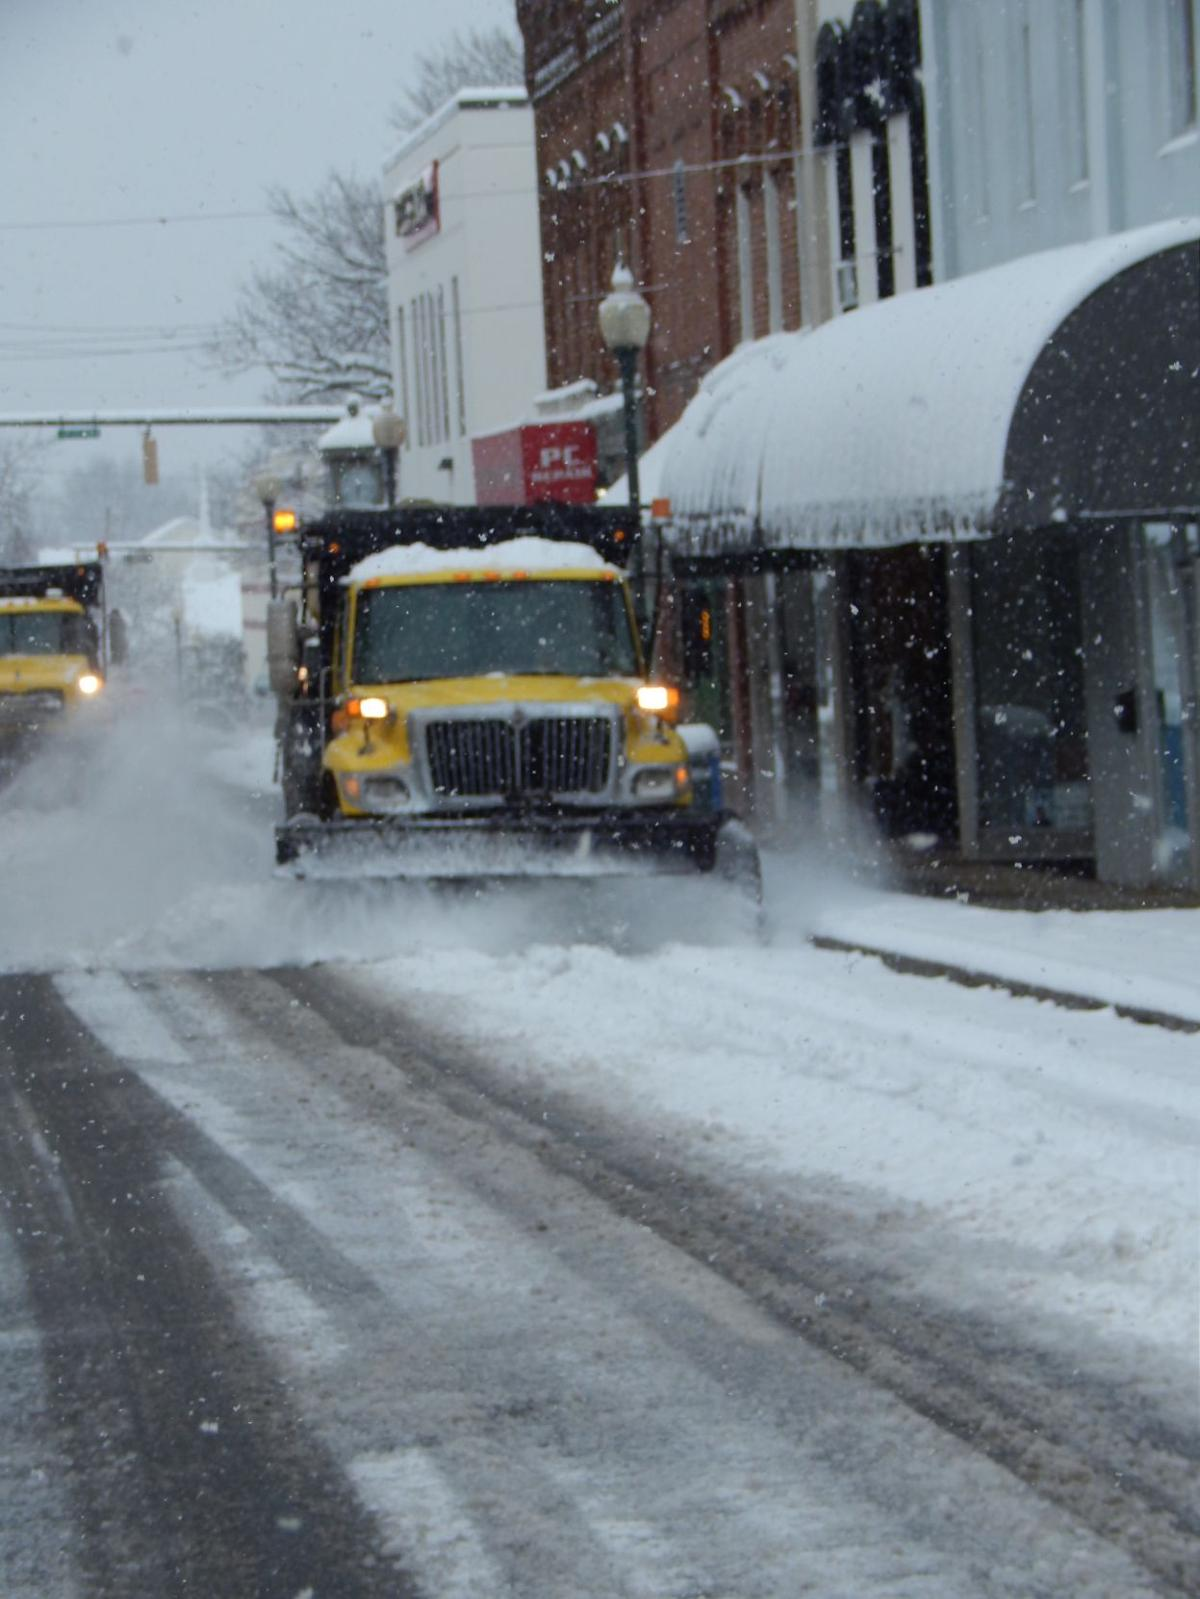 Winter storm drops 8-9 inches of snow in Morganton | News